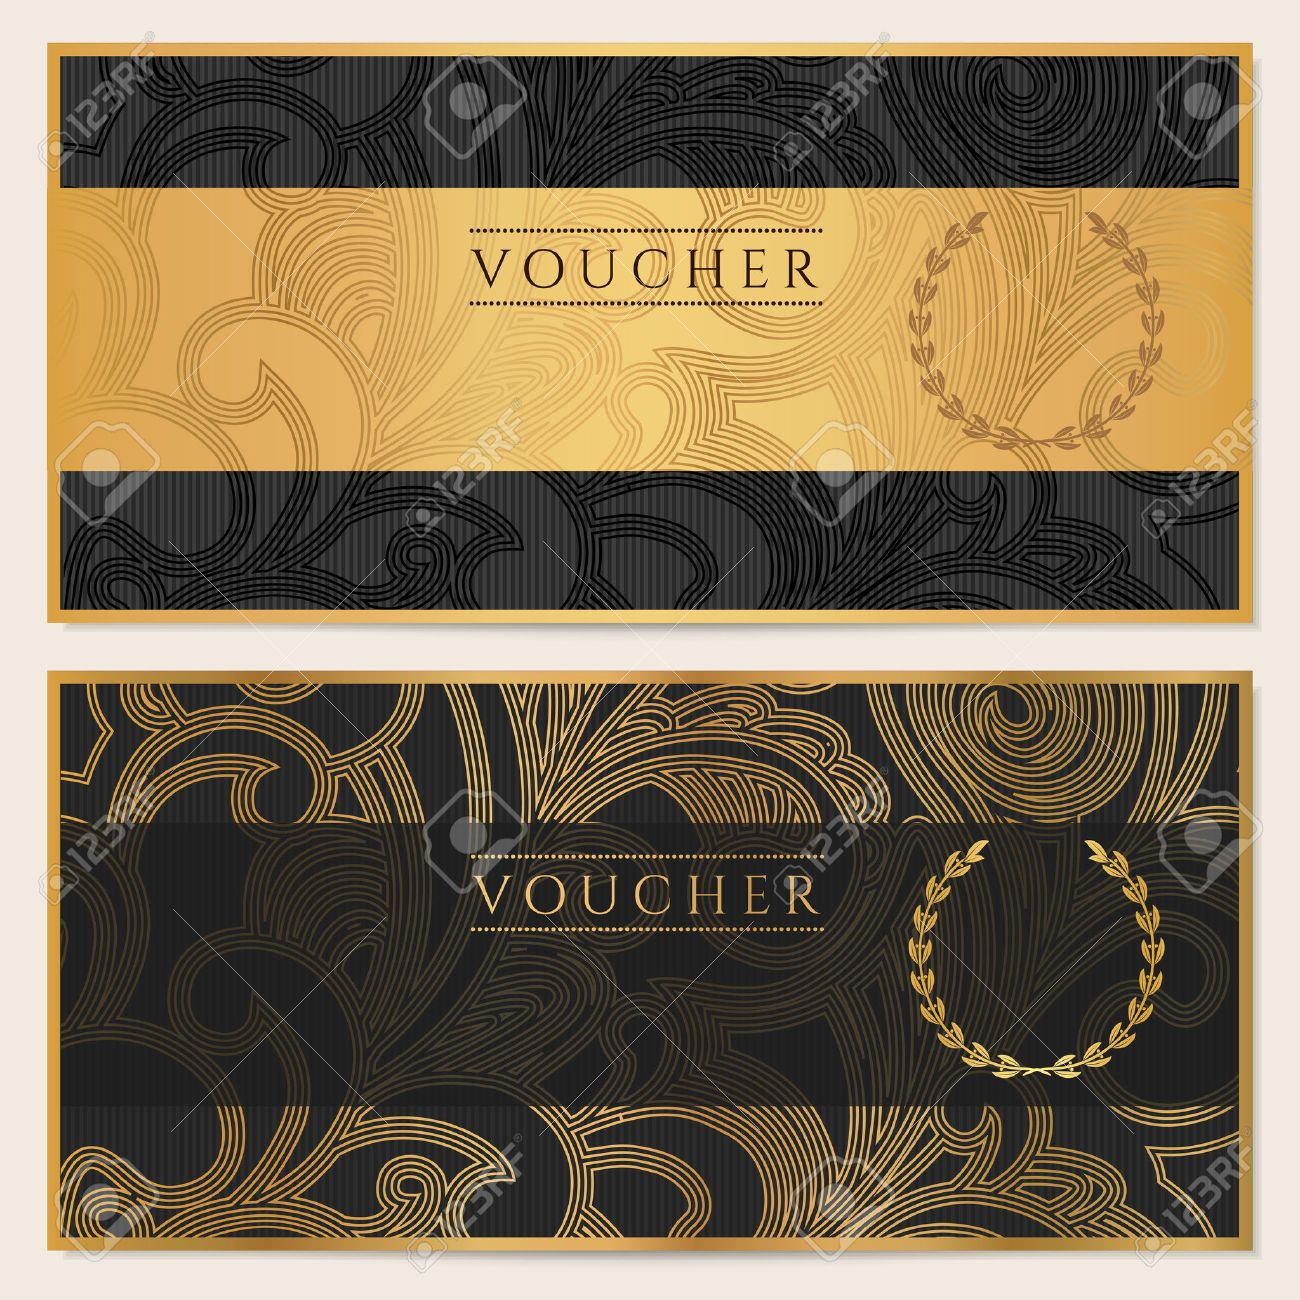 Voucher gift certificate coupon template floral scroll pattern voucher gift certificate coupon template floral scroll pattern bow frame background design yadclub Gallery